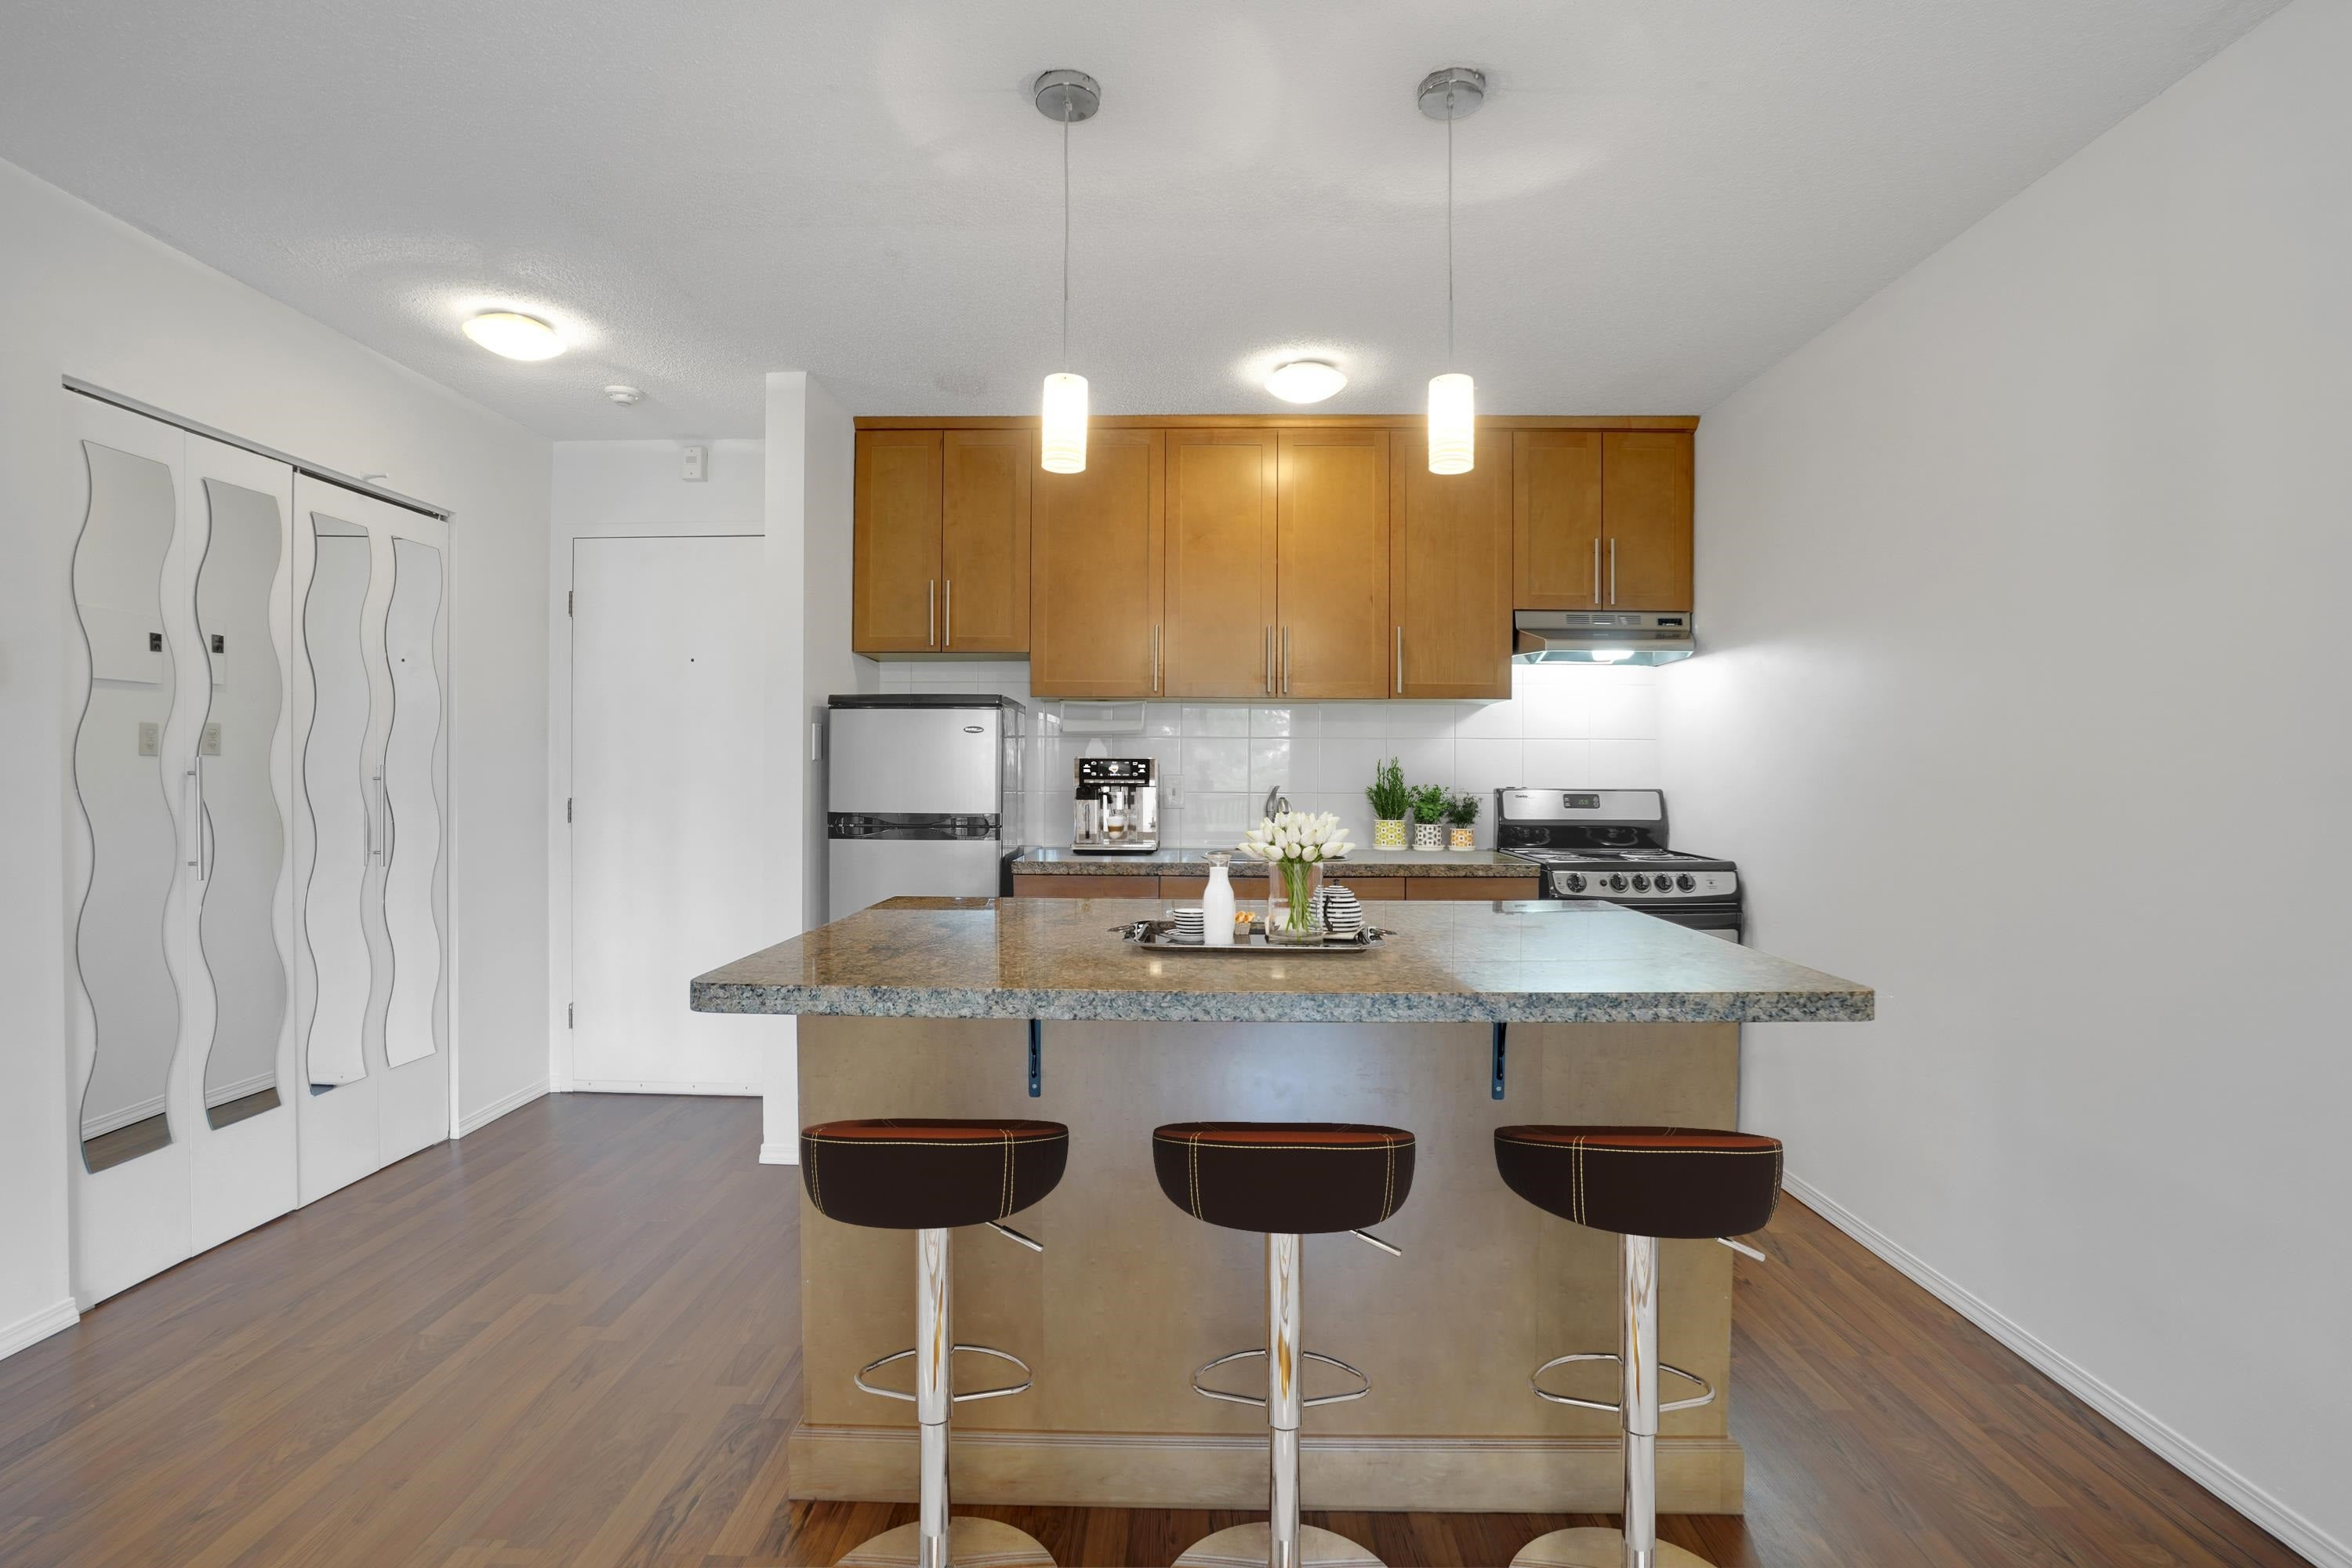 208 270 WEST 3RD STREET - Lower Lonsdale Apartment/Condo for sale, 1 Bedroom (R2615758) - #5